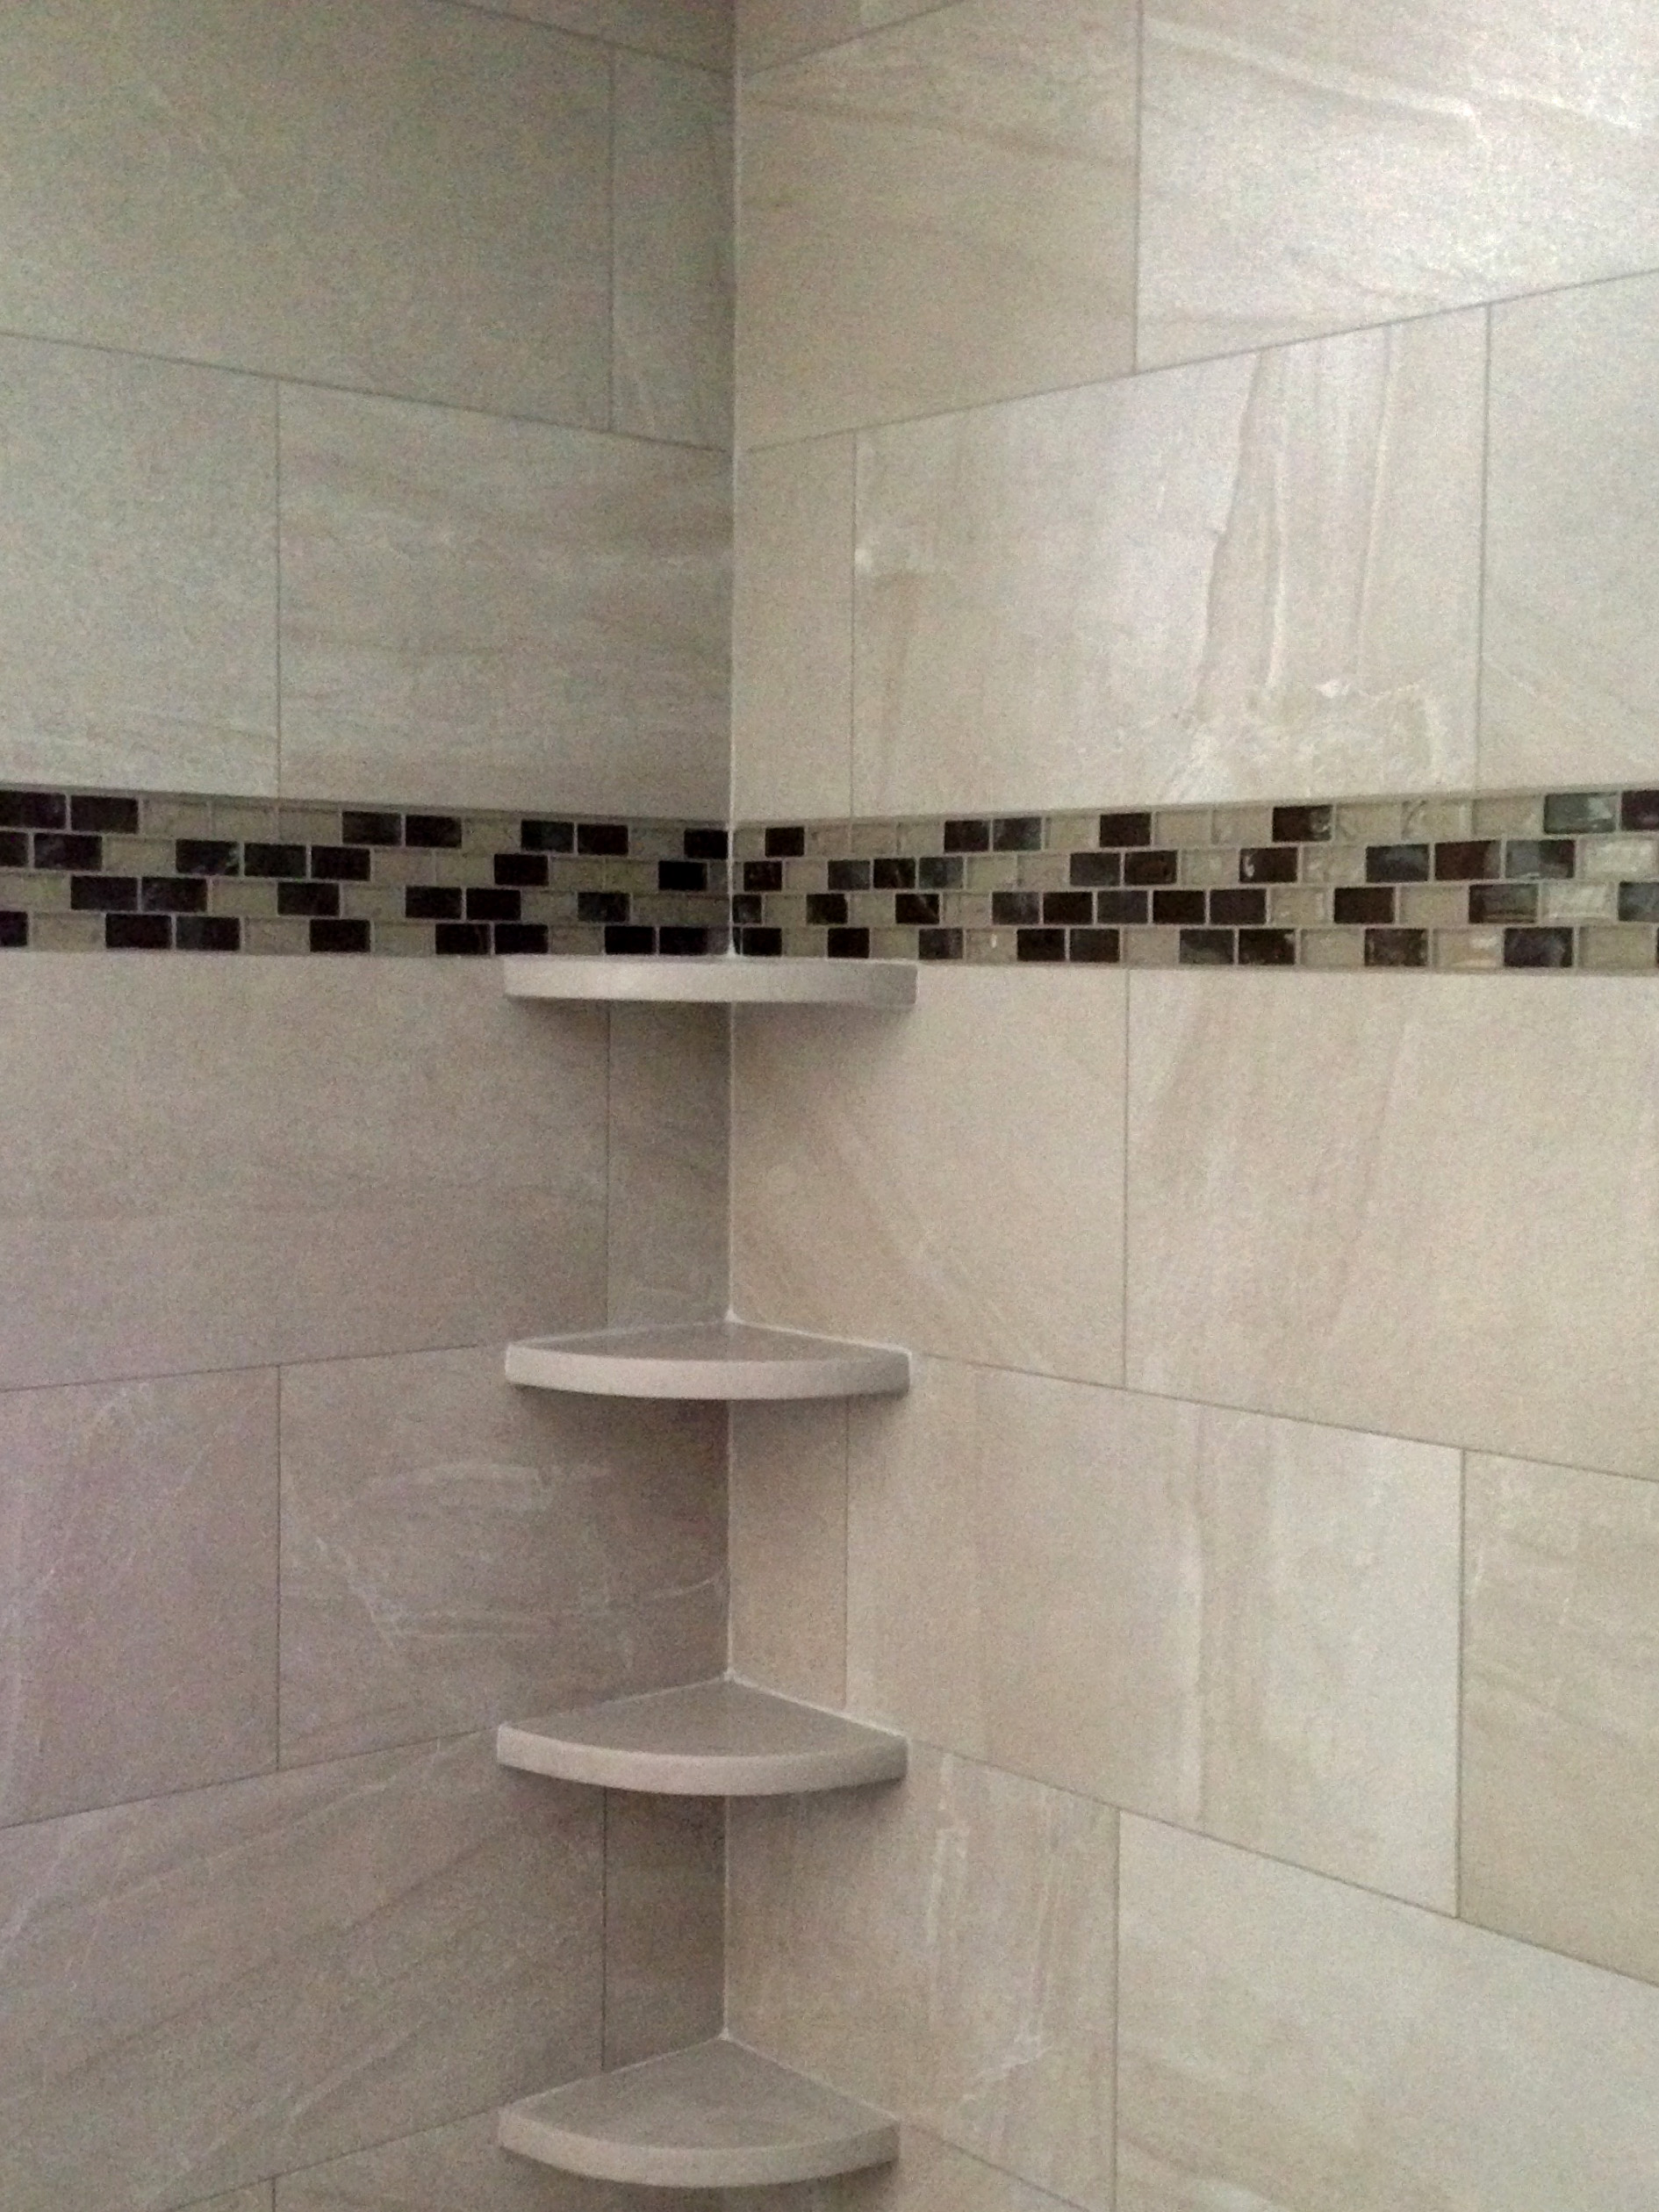 Shower with Shelves